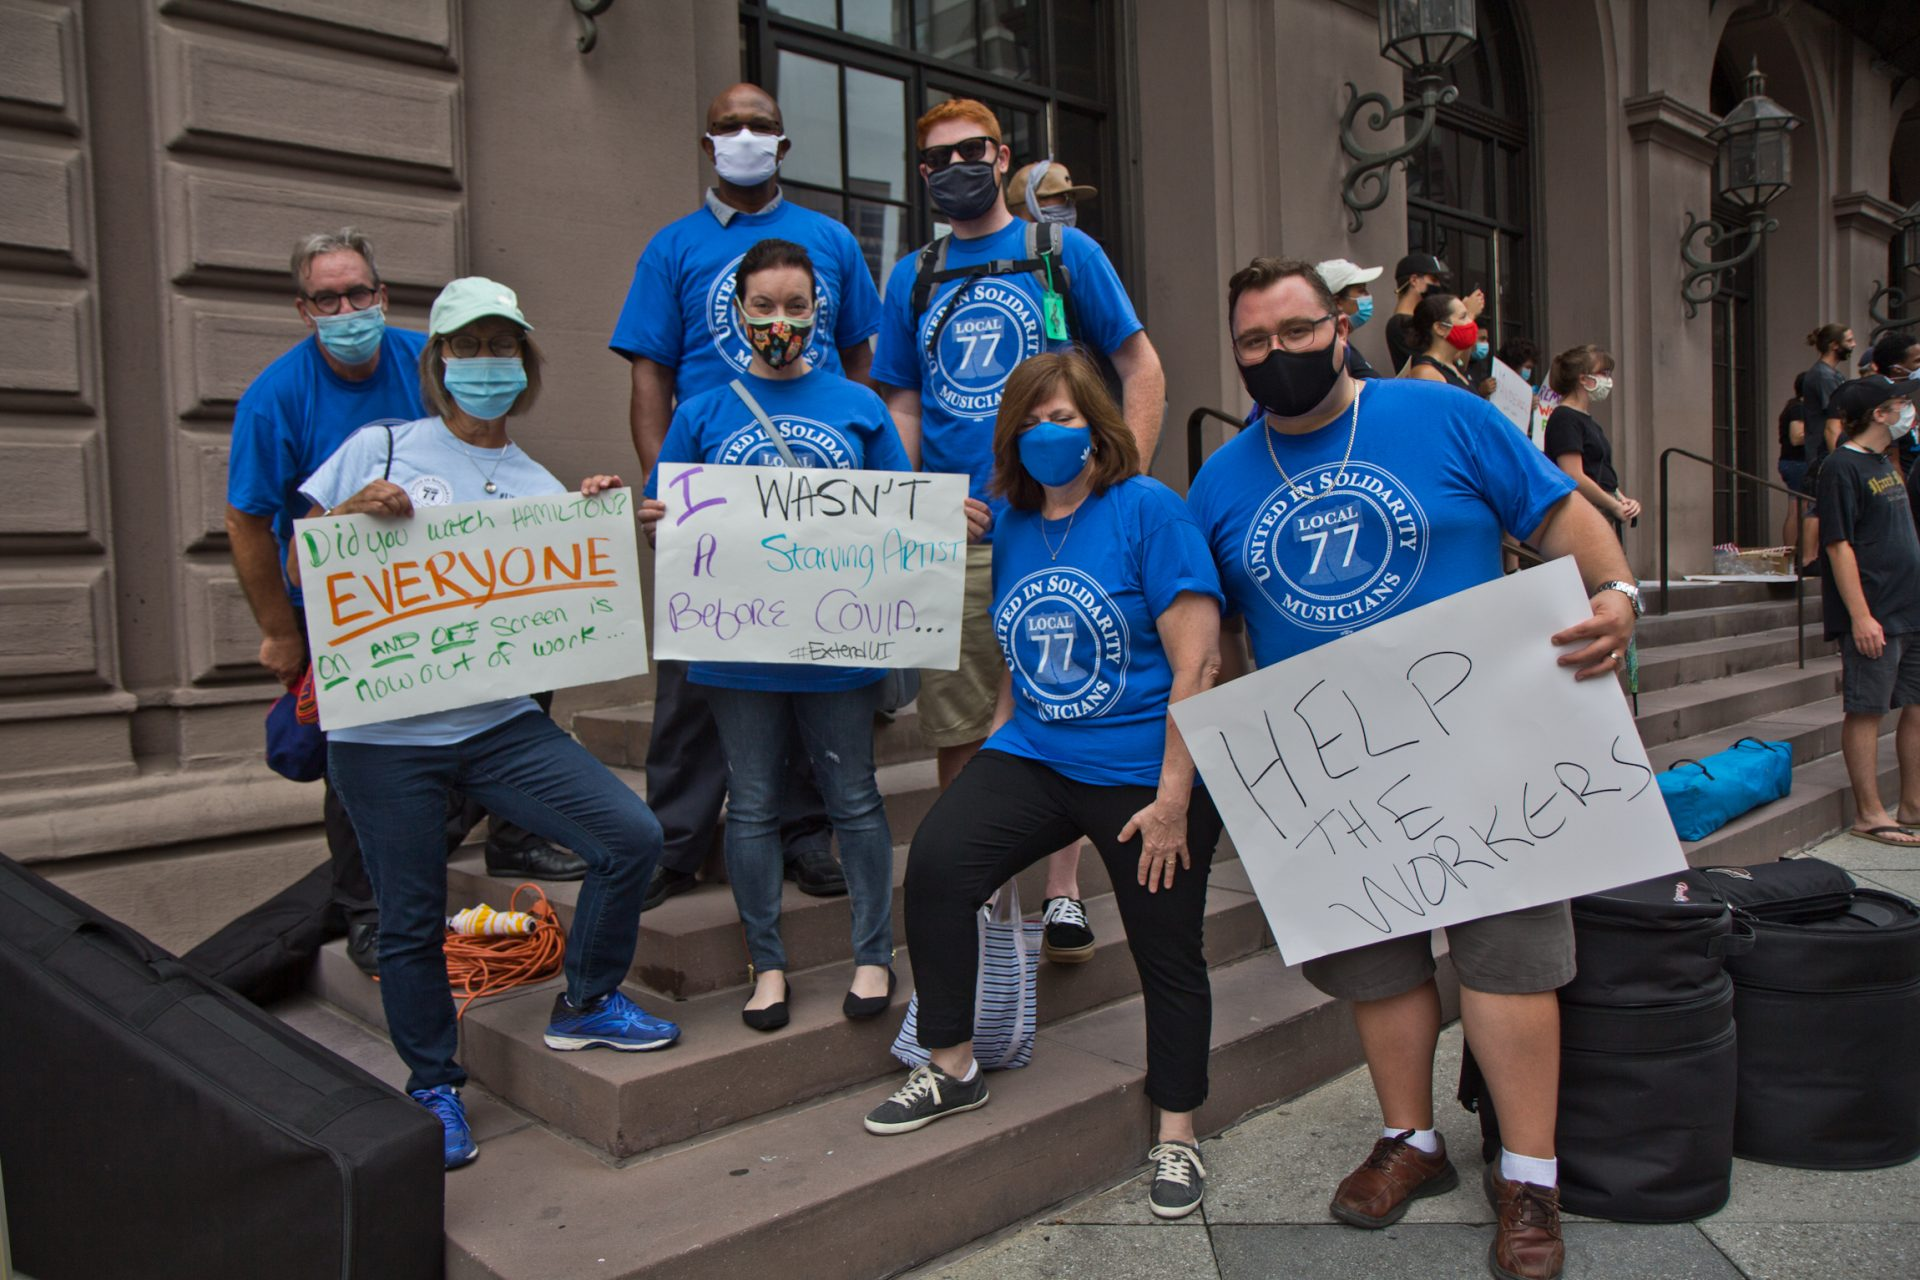 Becky Ansel with members of the Philadelphia Musicians' Union Local 77 at a protest demanding the extension of unemployment benefits for out of work musicians, stagehands and other out of work entertainment professionals.